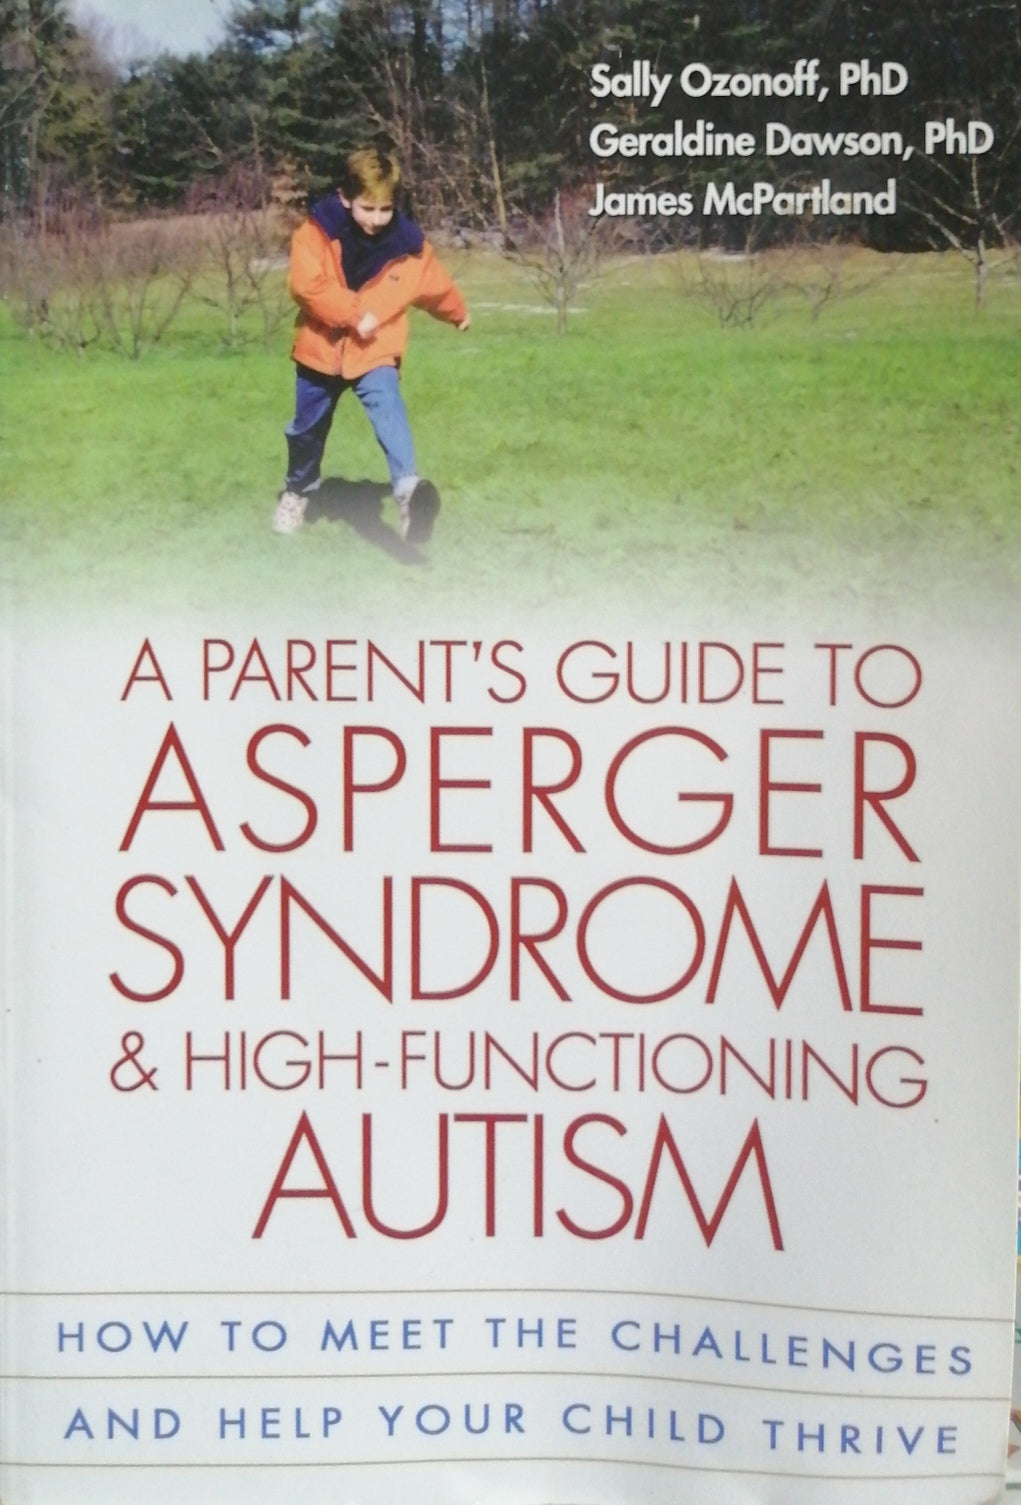 A parents guide to asperger syndrome & high-functioning autism